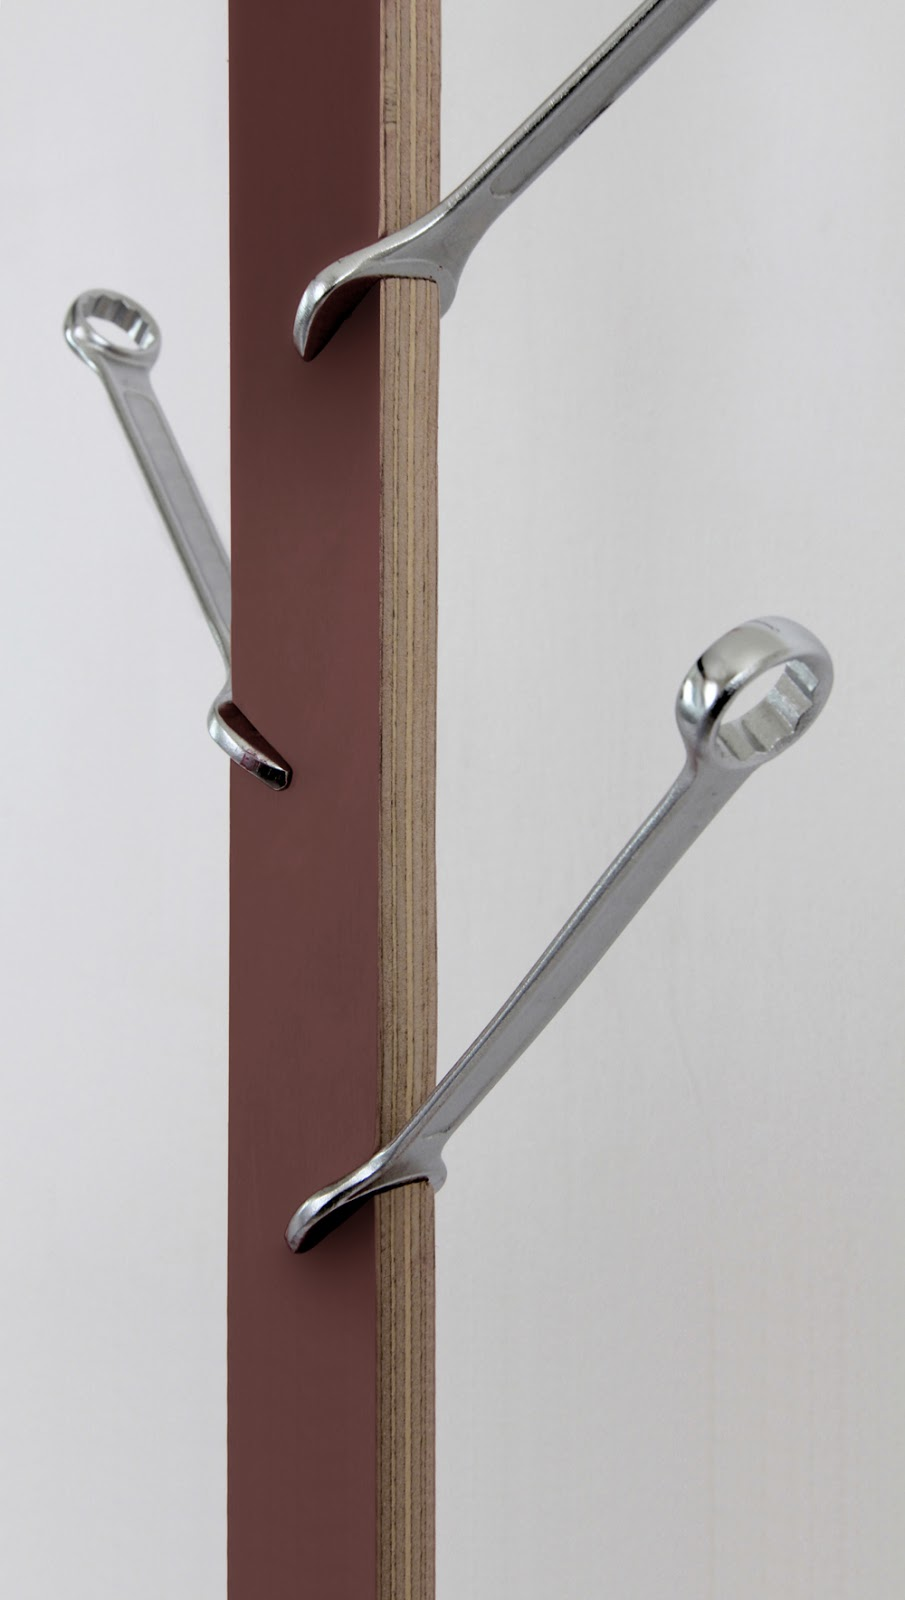 vida 39 s think tank french product designer pierre lota creates 8 design projects in less that a